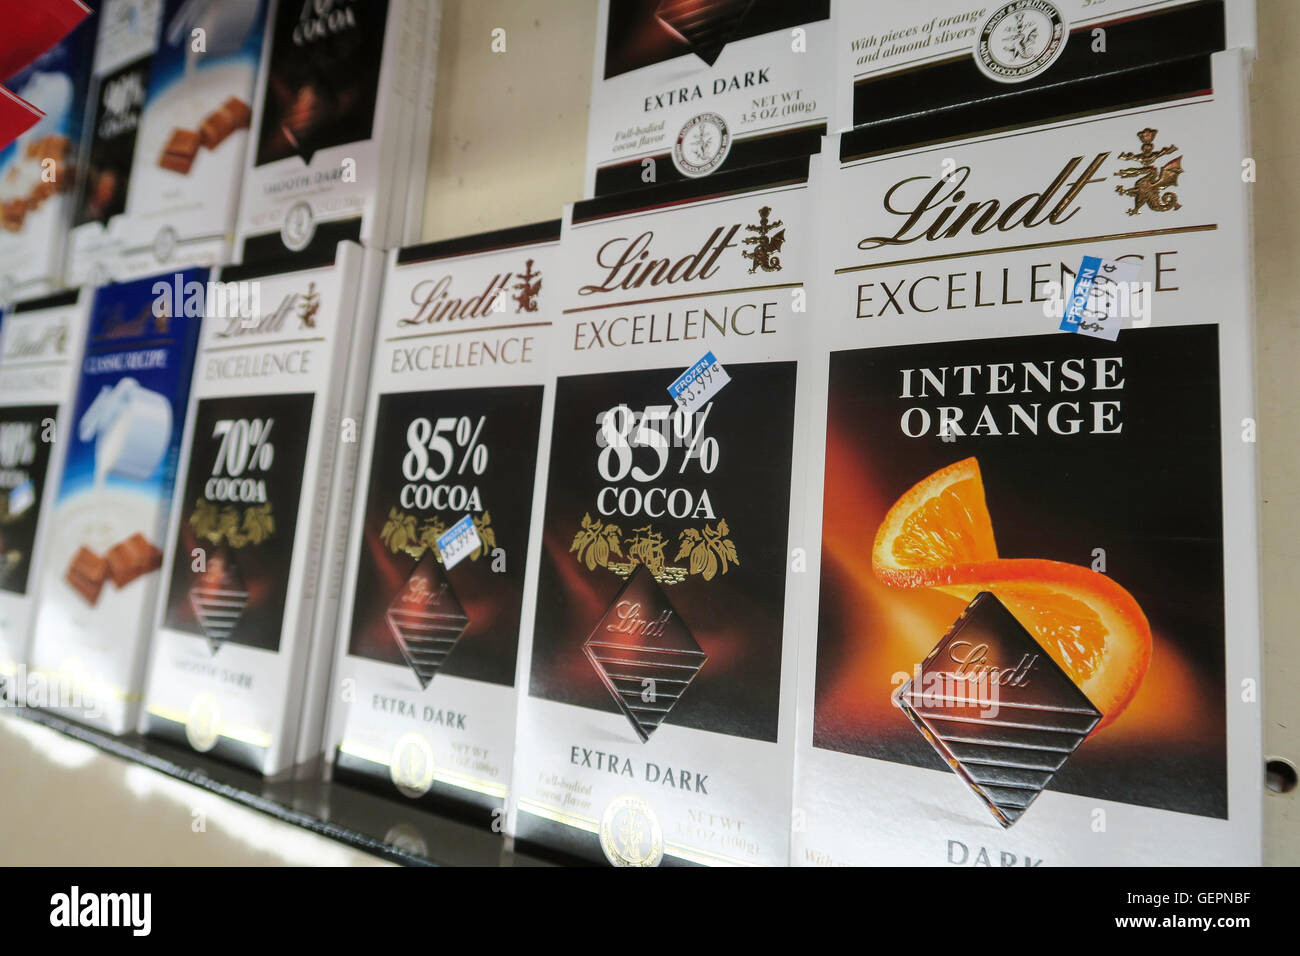 Lindt Chocolate Store Stock Photos & Lindt Chocolate Store Stock ...